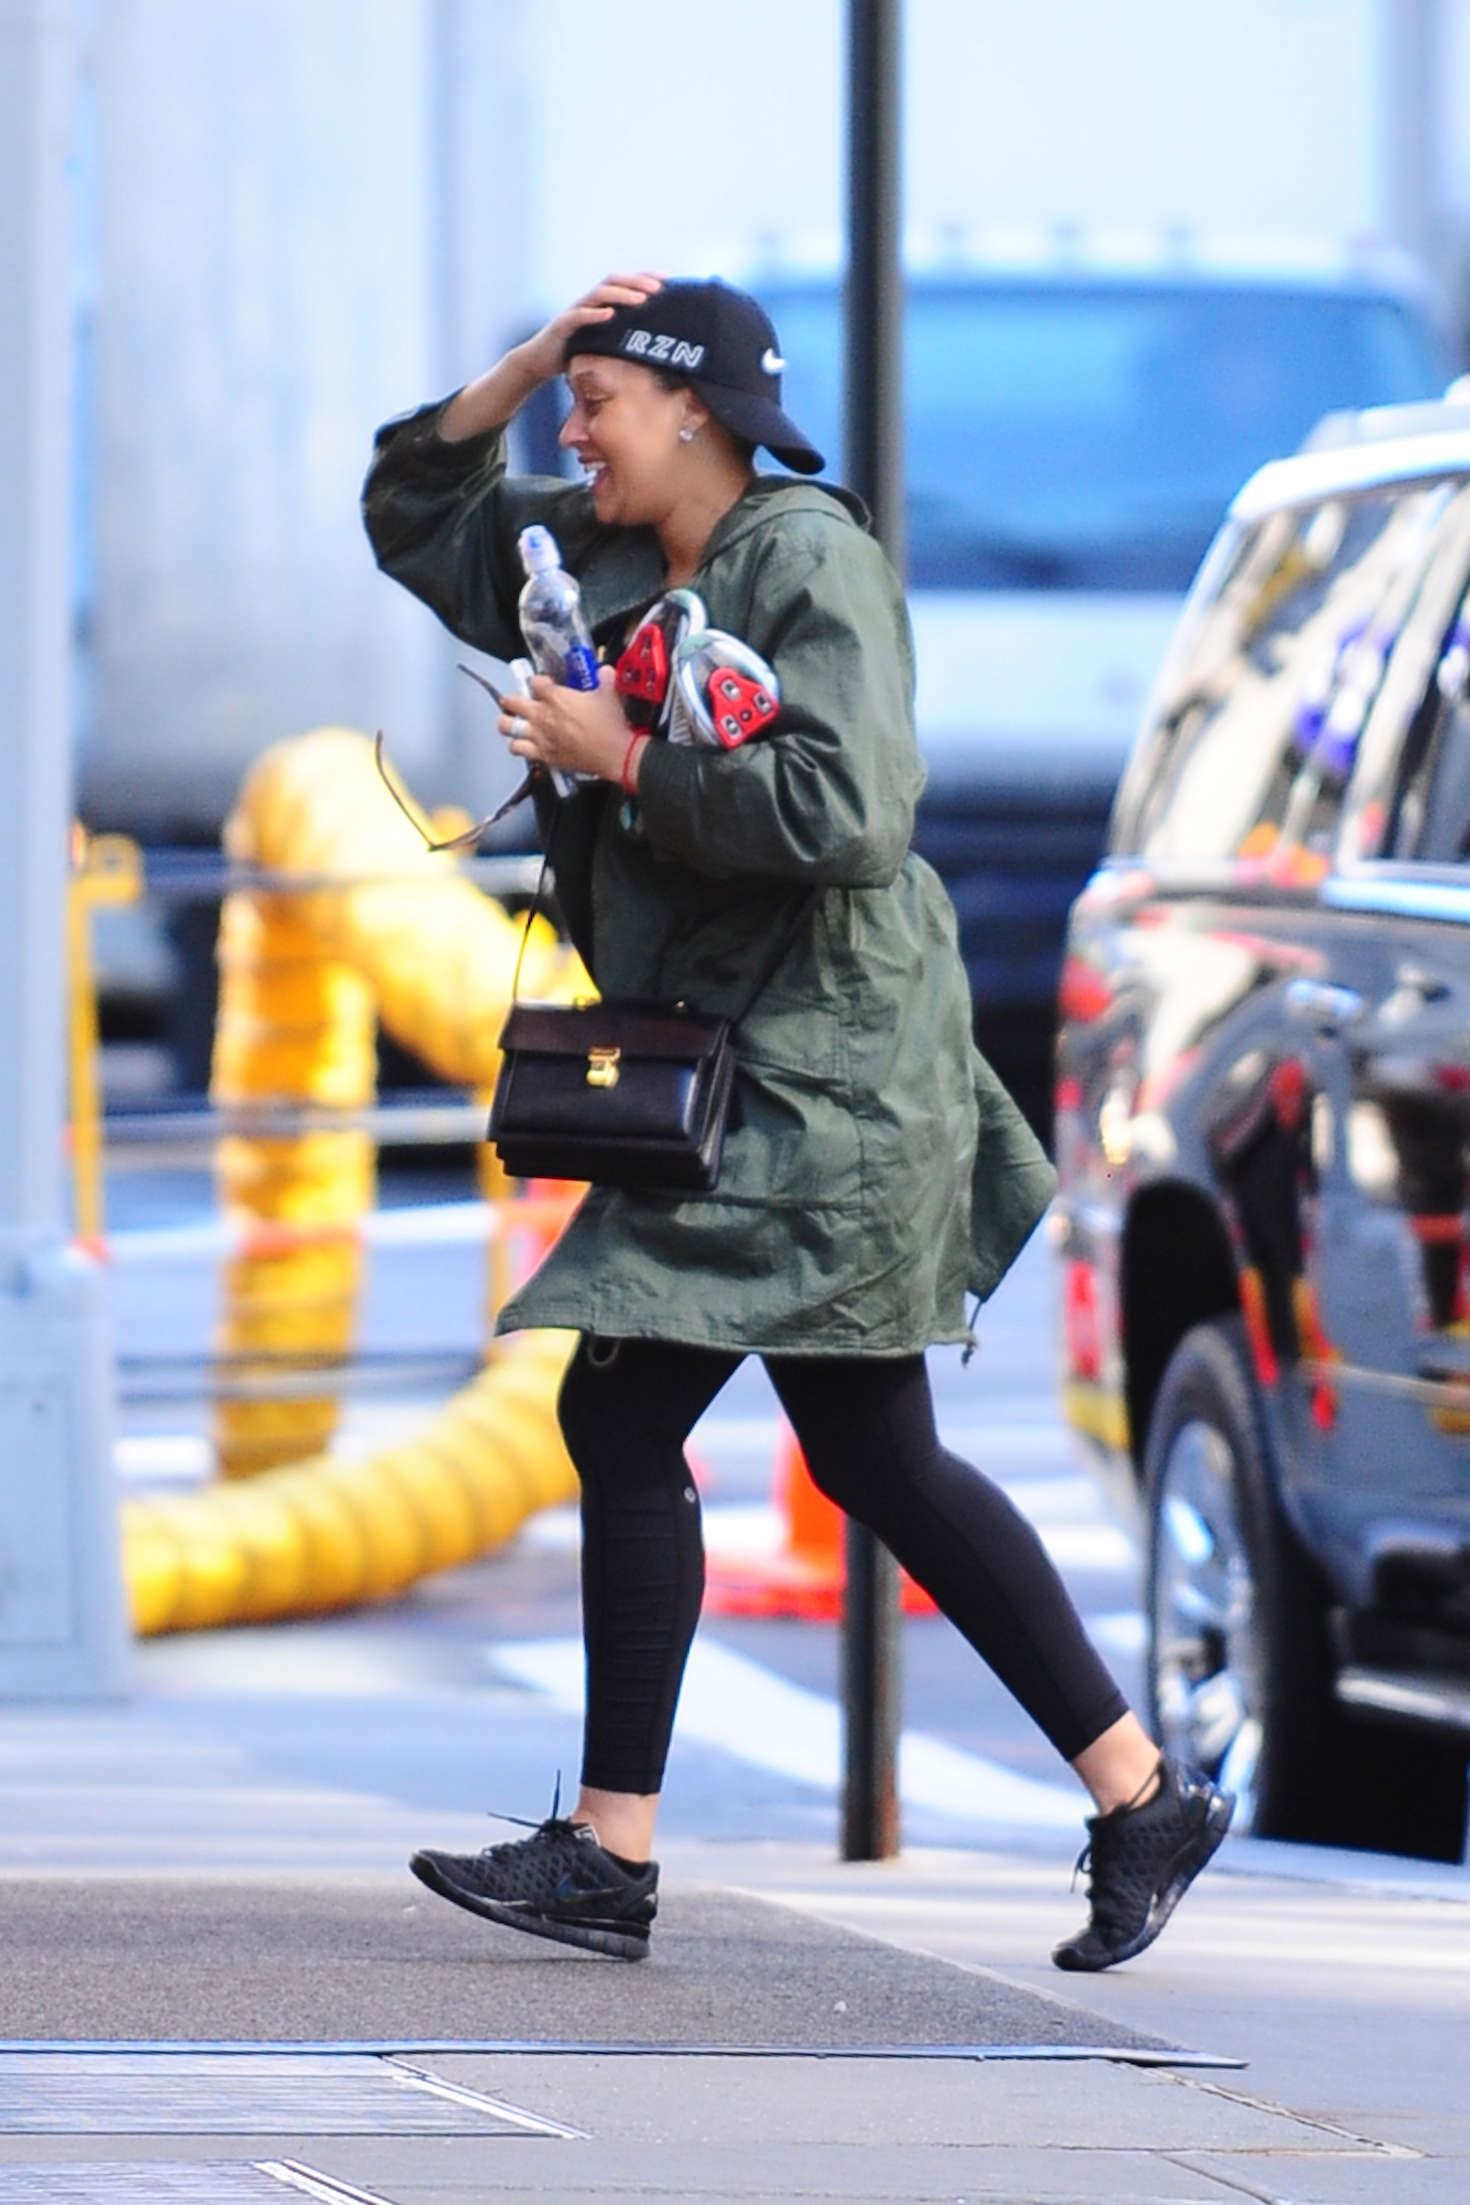 Tia Mowry Arrives for her workout in New York